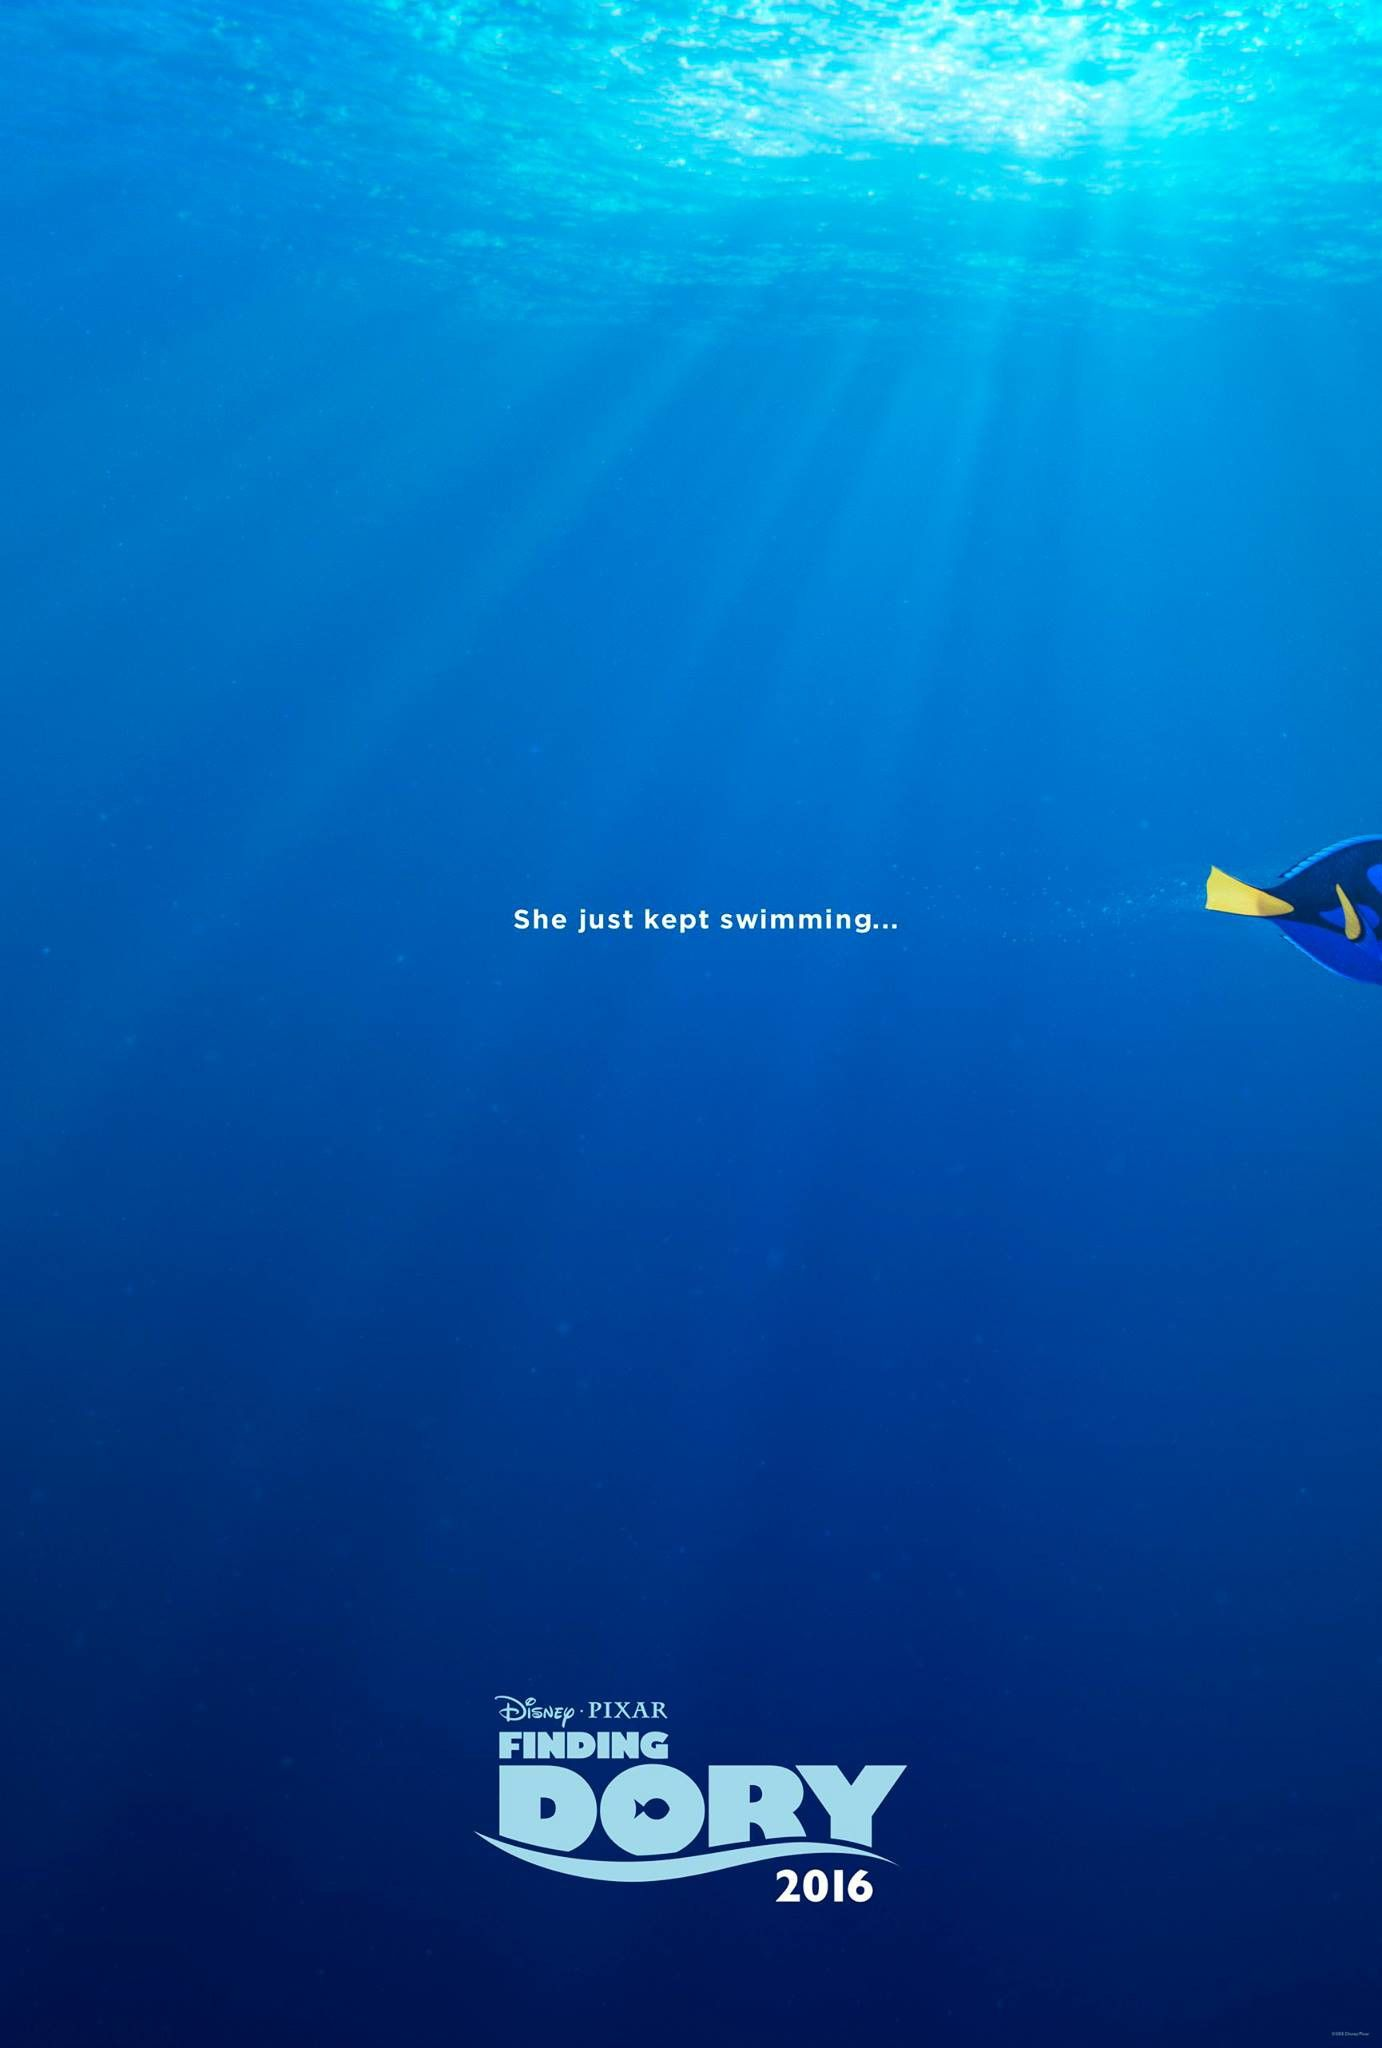 Dory Quotes Unique Finding Dory Poster  All Things Disney  Pinterest  Finding Dory . Review